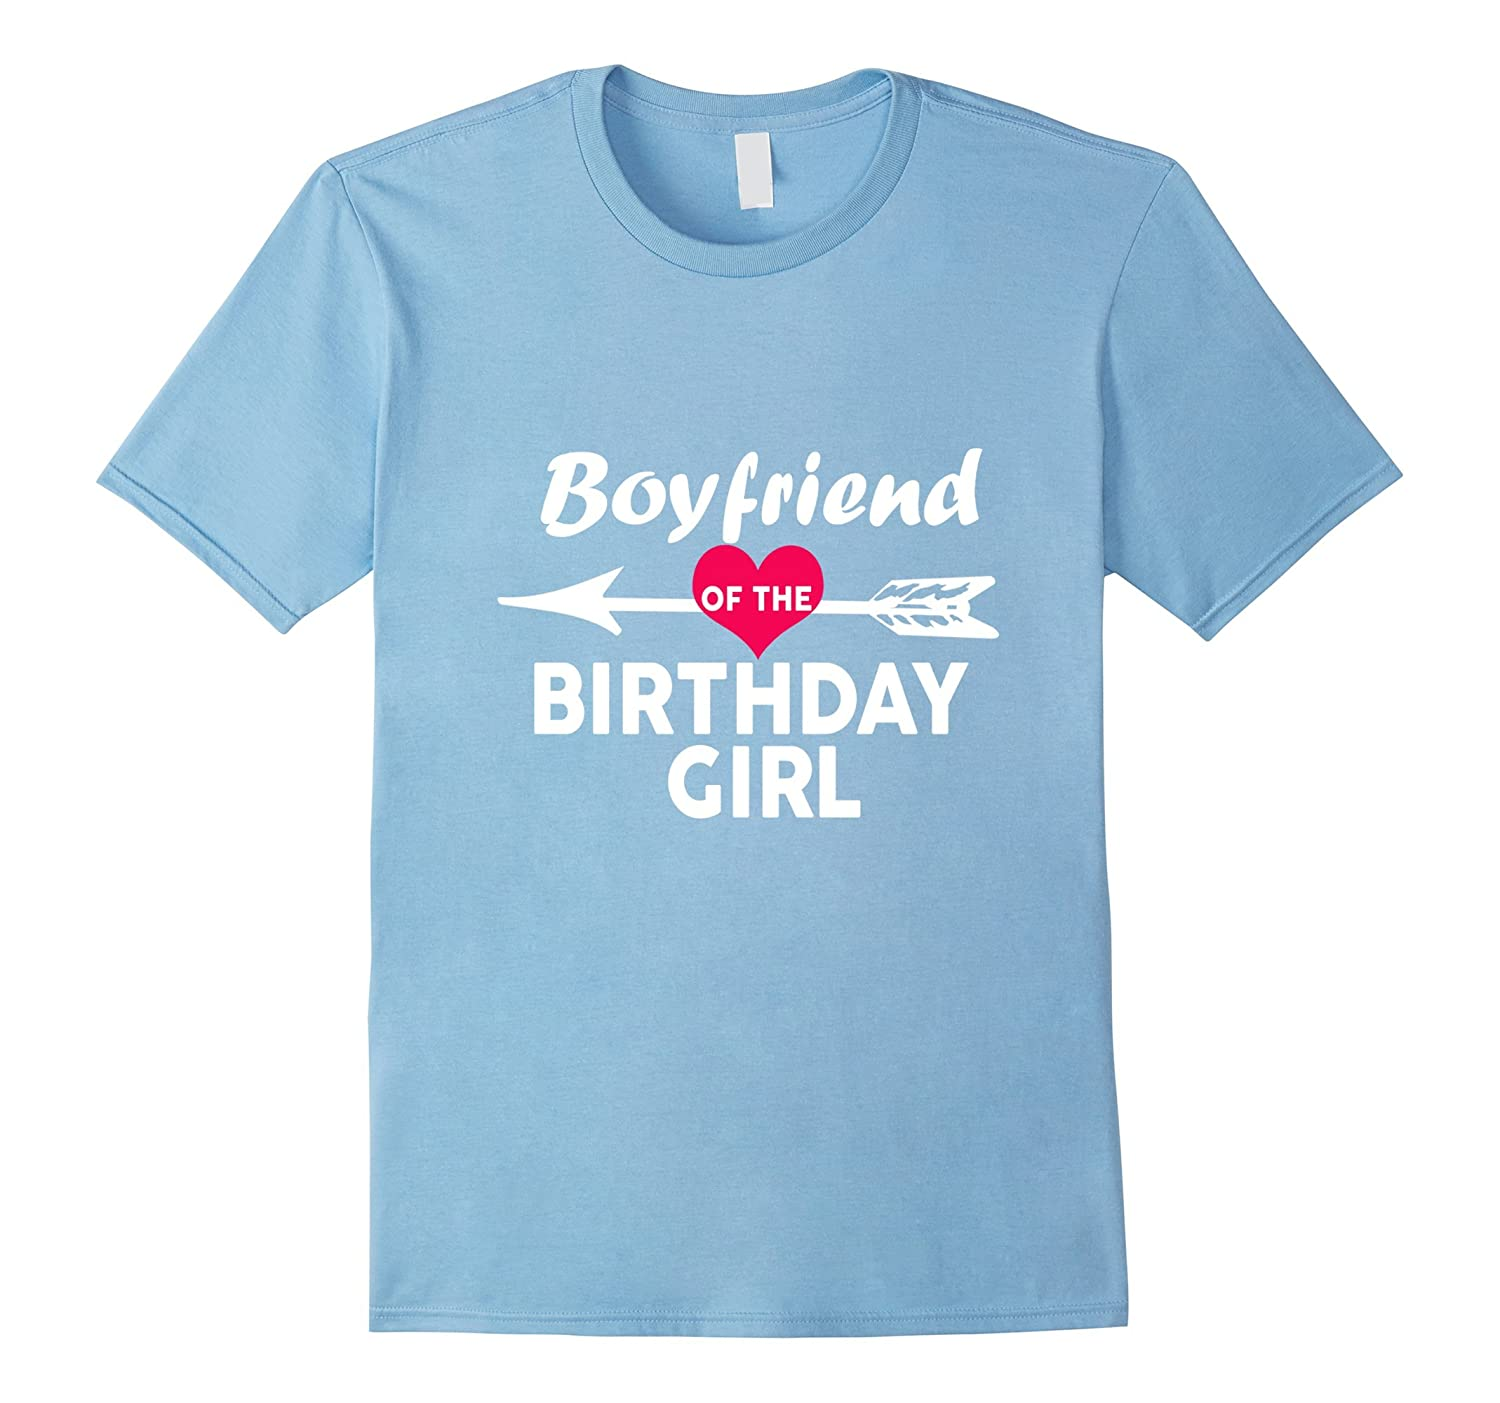 Boyfriend Of The Birthday Girl Shirt